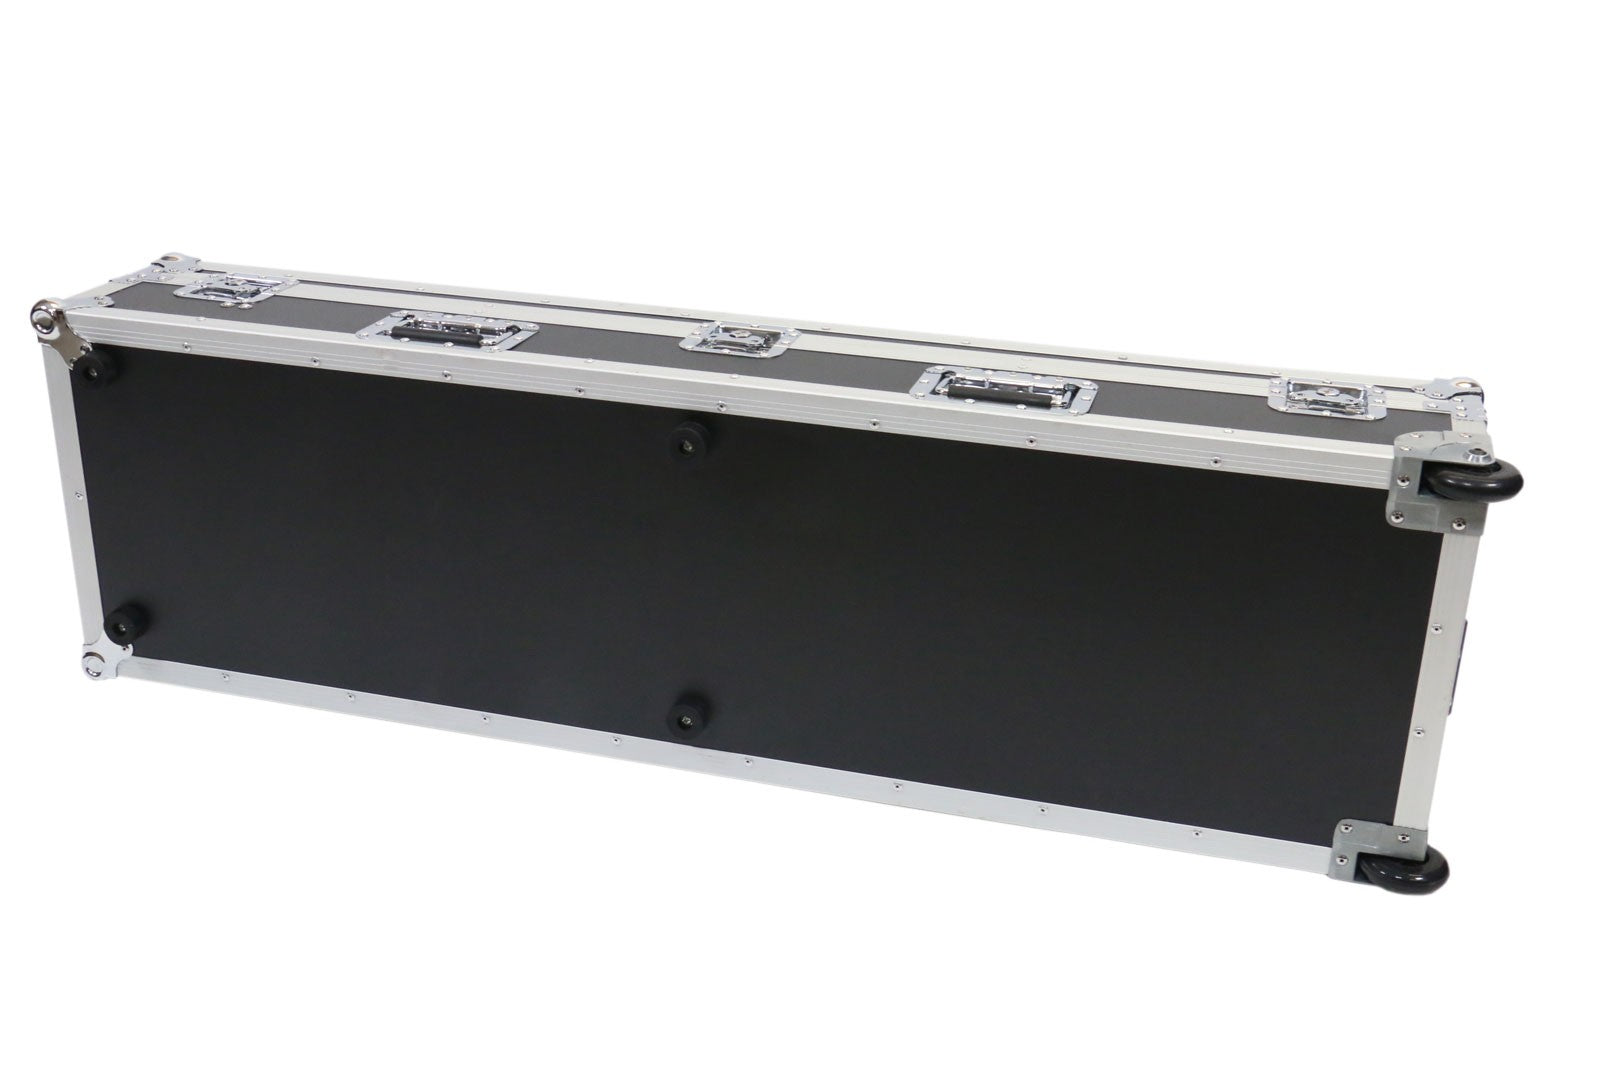 OSP ATA-XF7-WC Case with Recessed Casters for Yamaha Motif XF7, ES7, or XS7